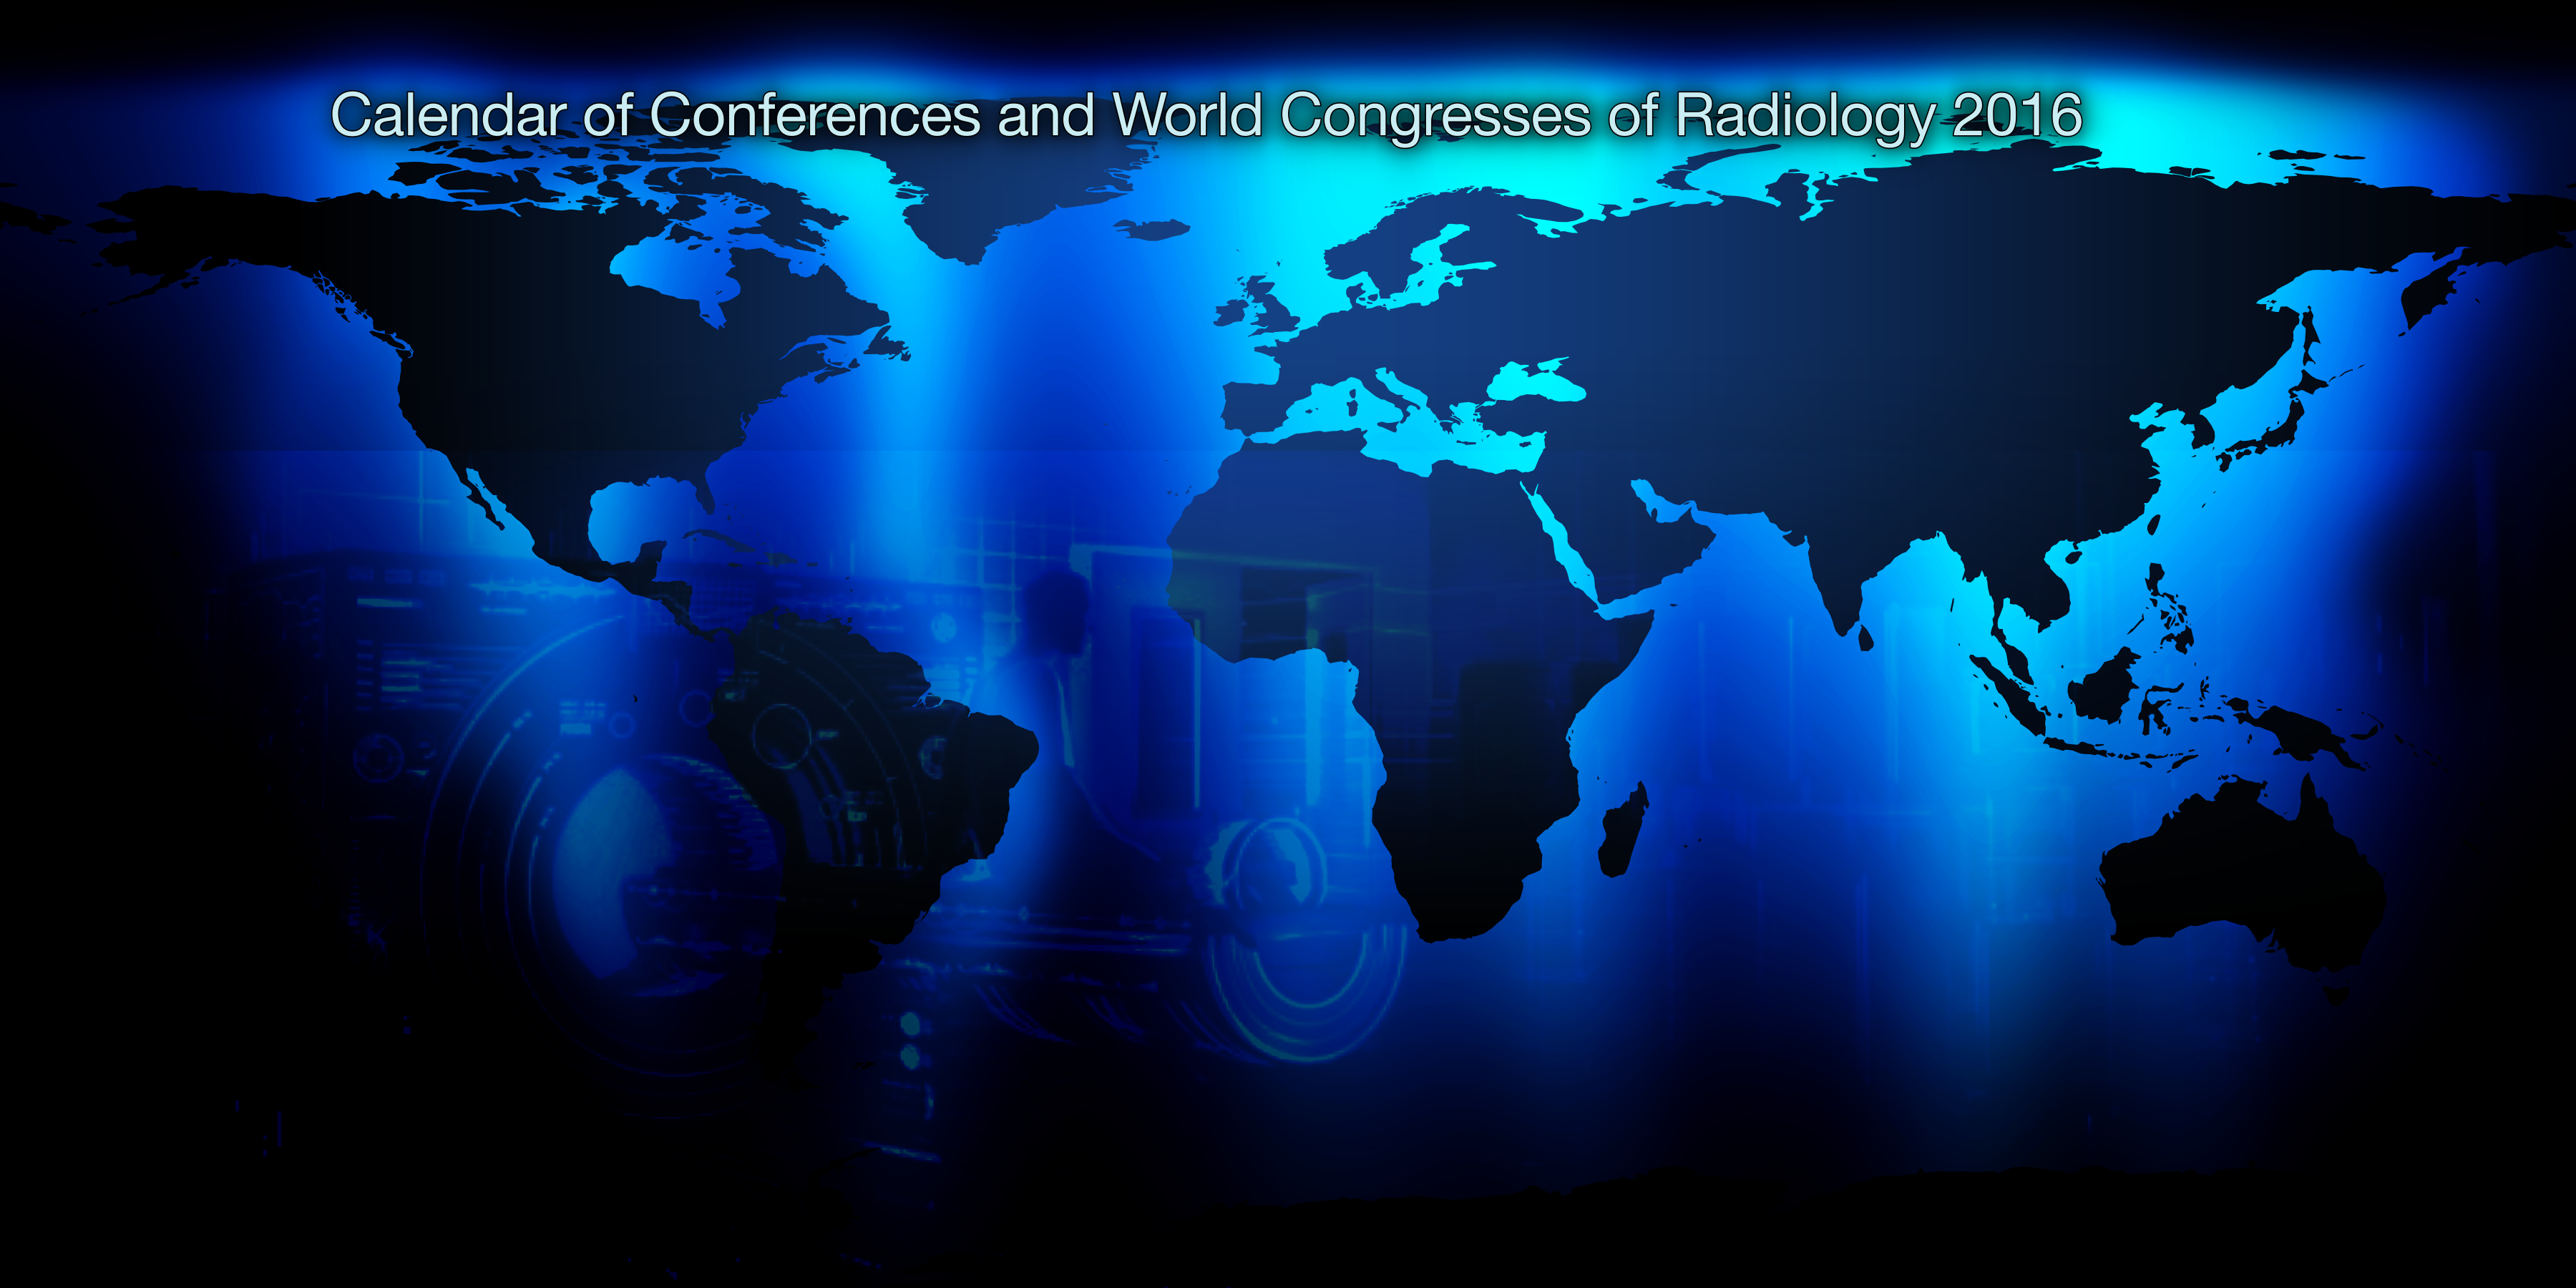 Calendar of Conferences and World Congresses of Radiology 2016.